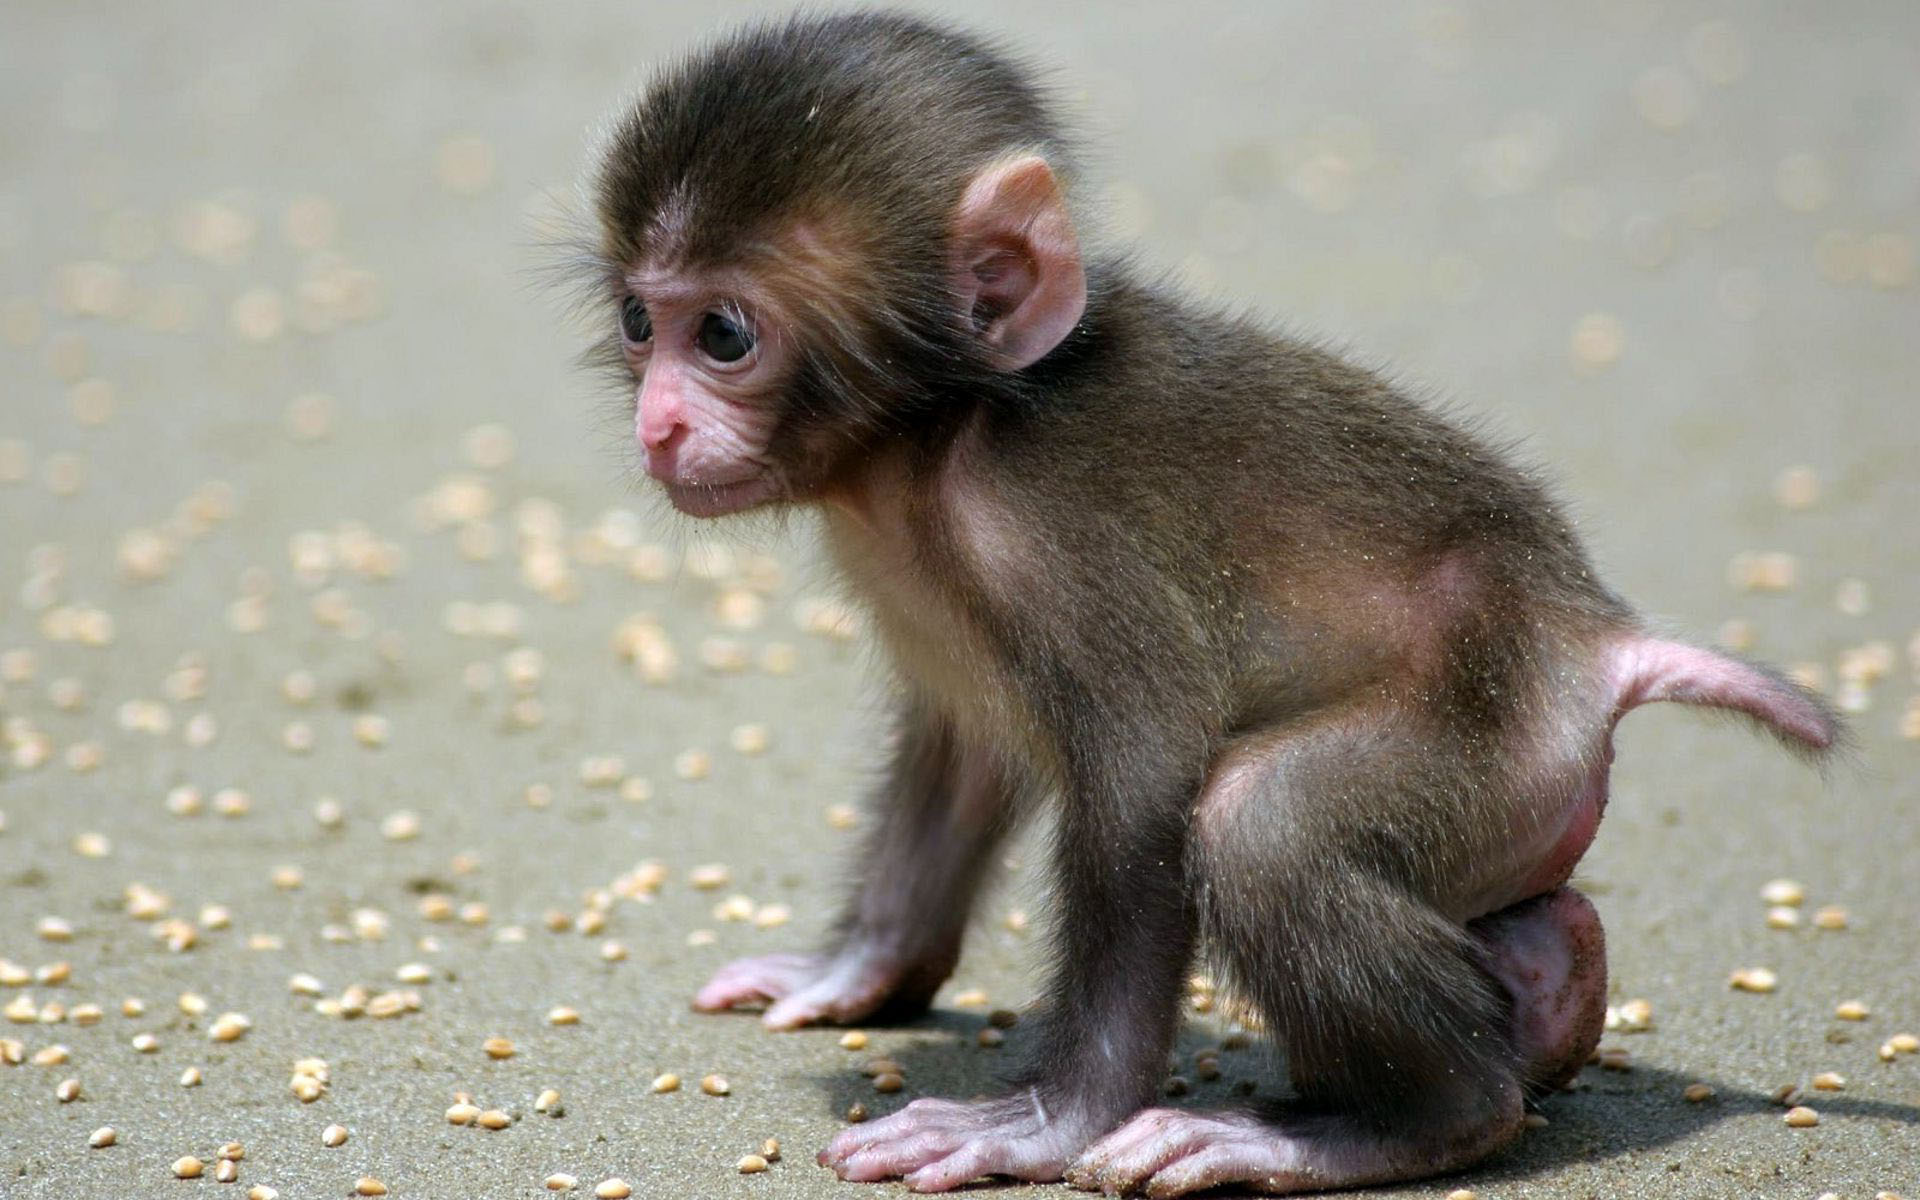 Baby Monkey HD Wallpaper, Background Images